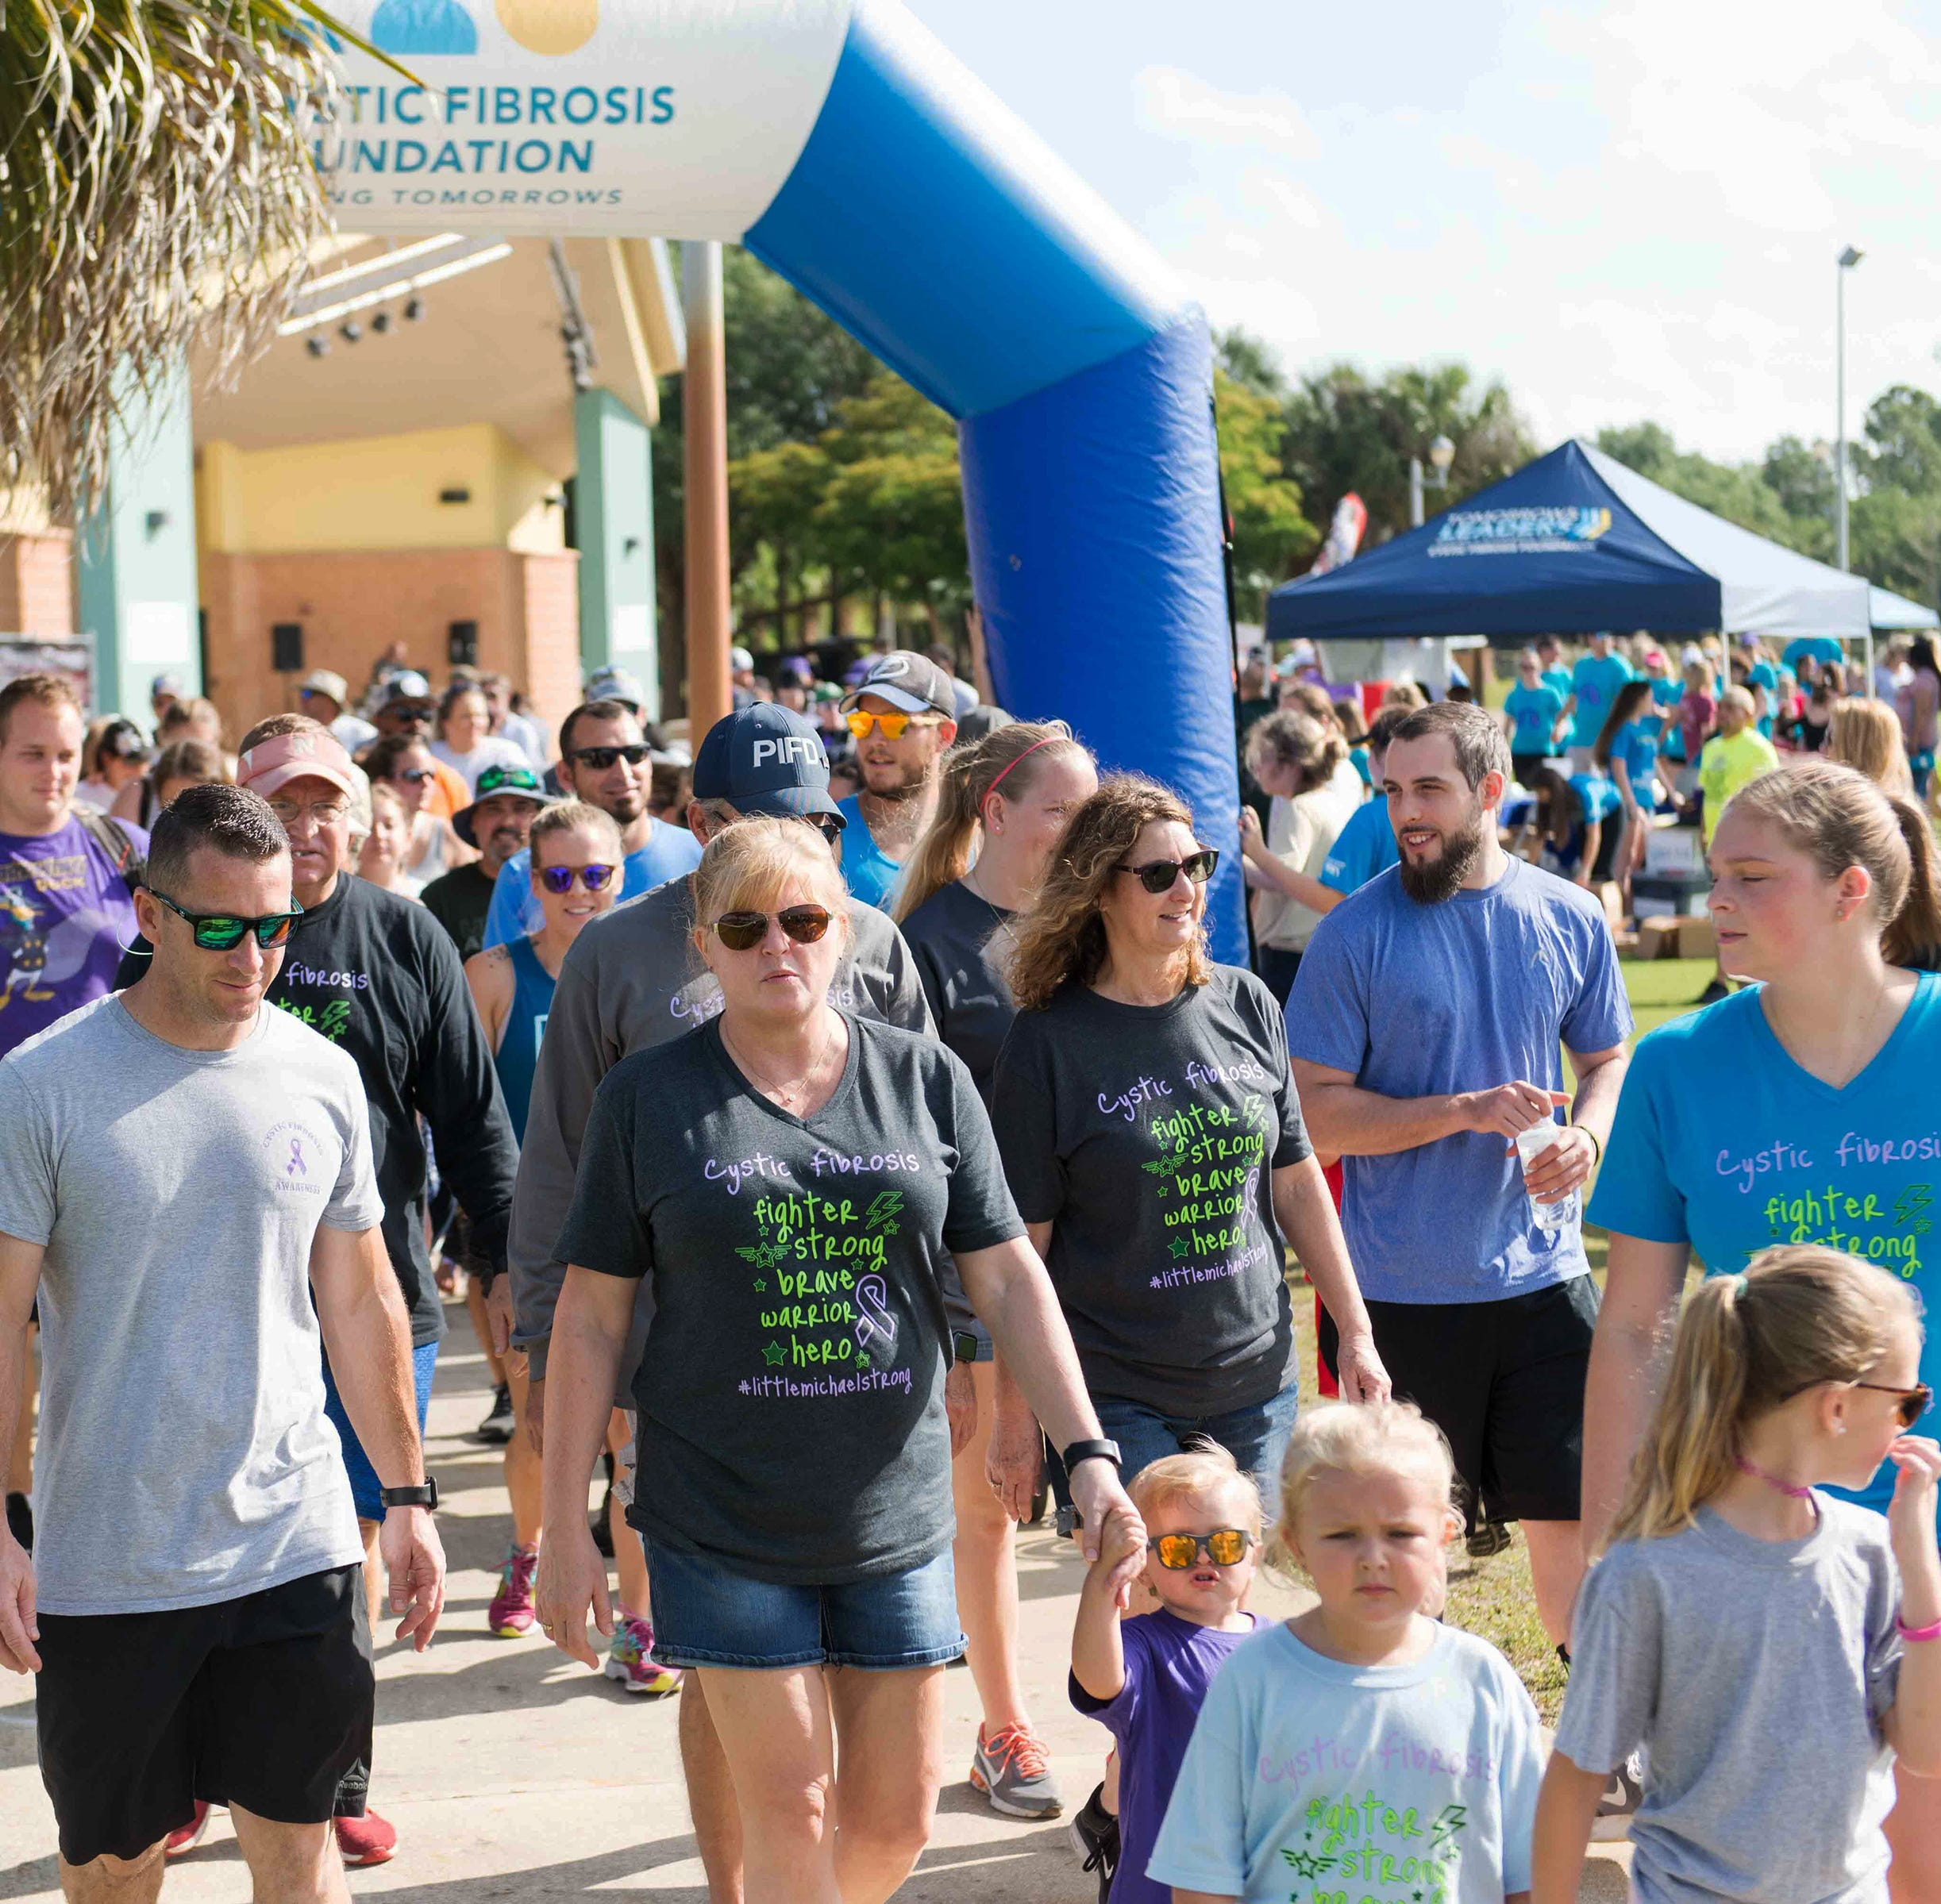 Making A Difference: Calling attention to cystic fibrosis